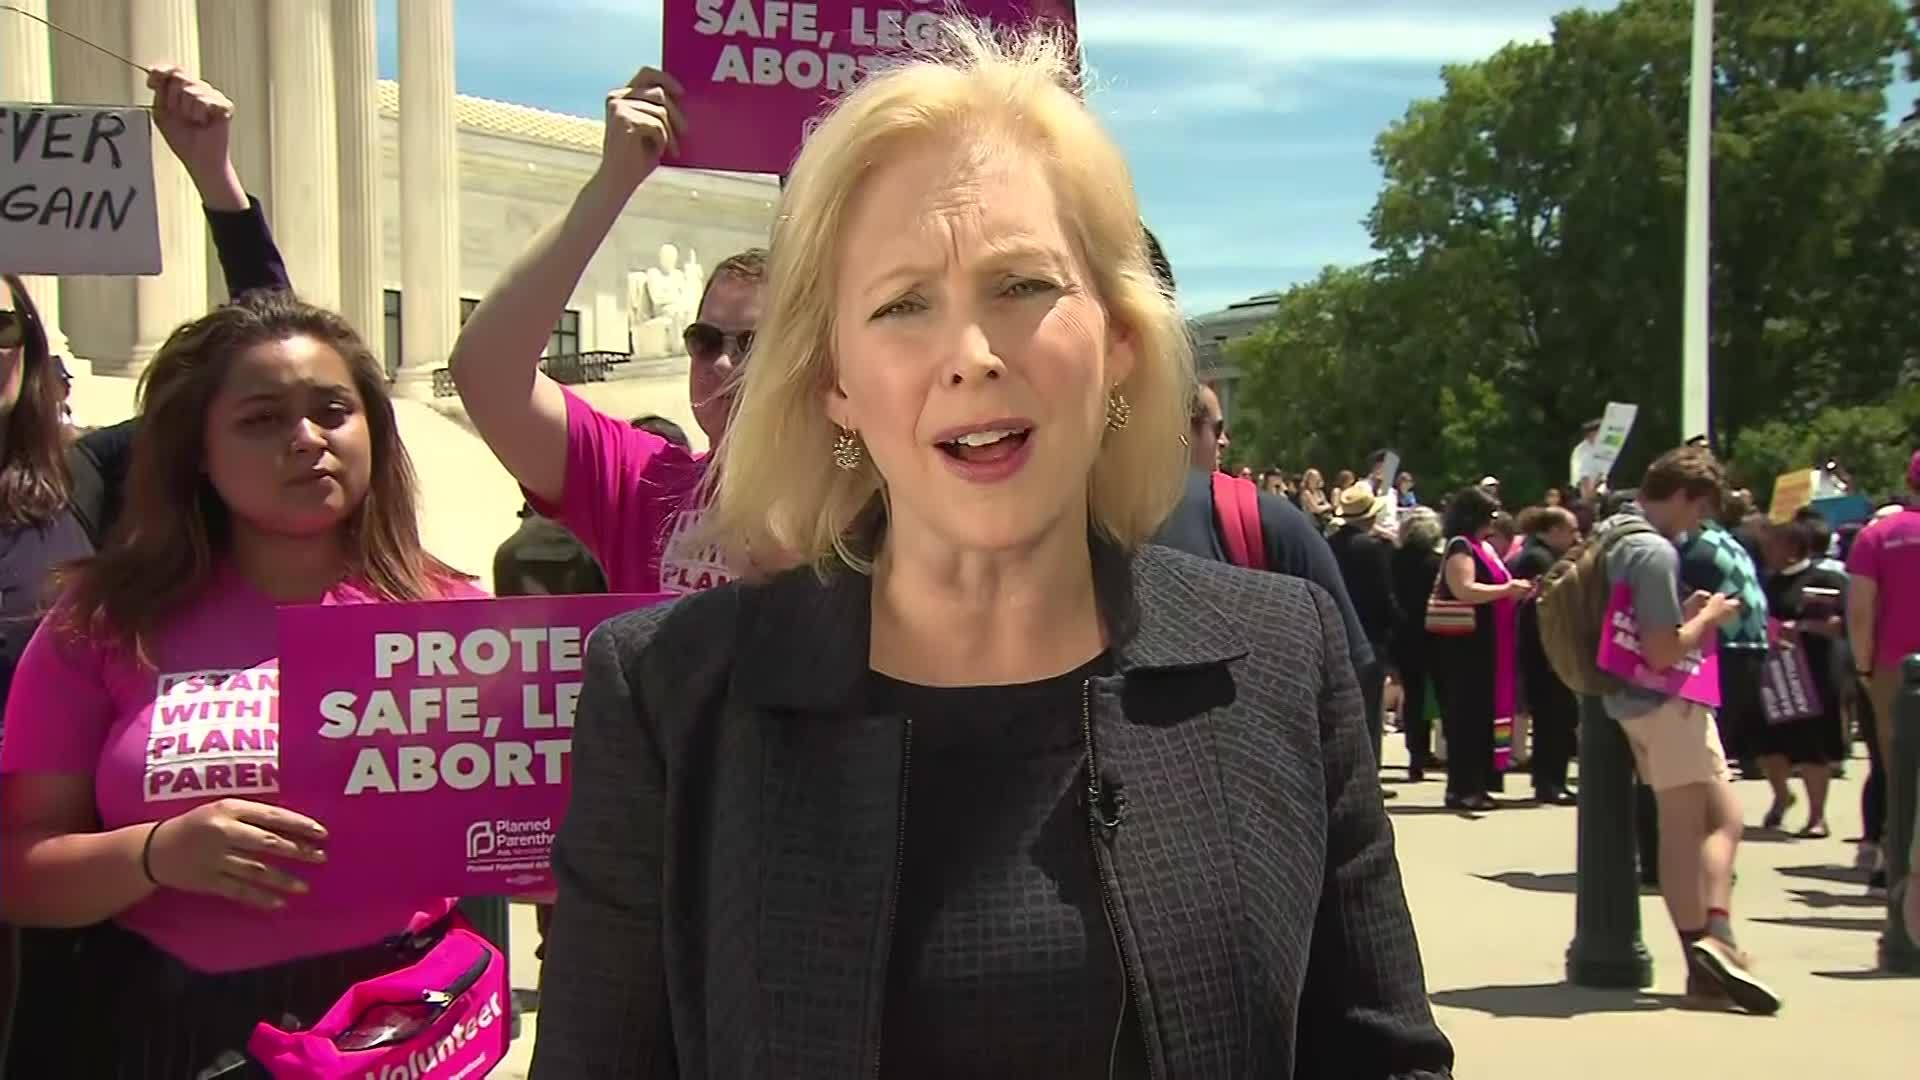 ABORTION RALLY/GILLIBRAND: FIGHTING FOR 4 THINGS